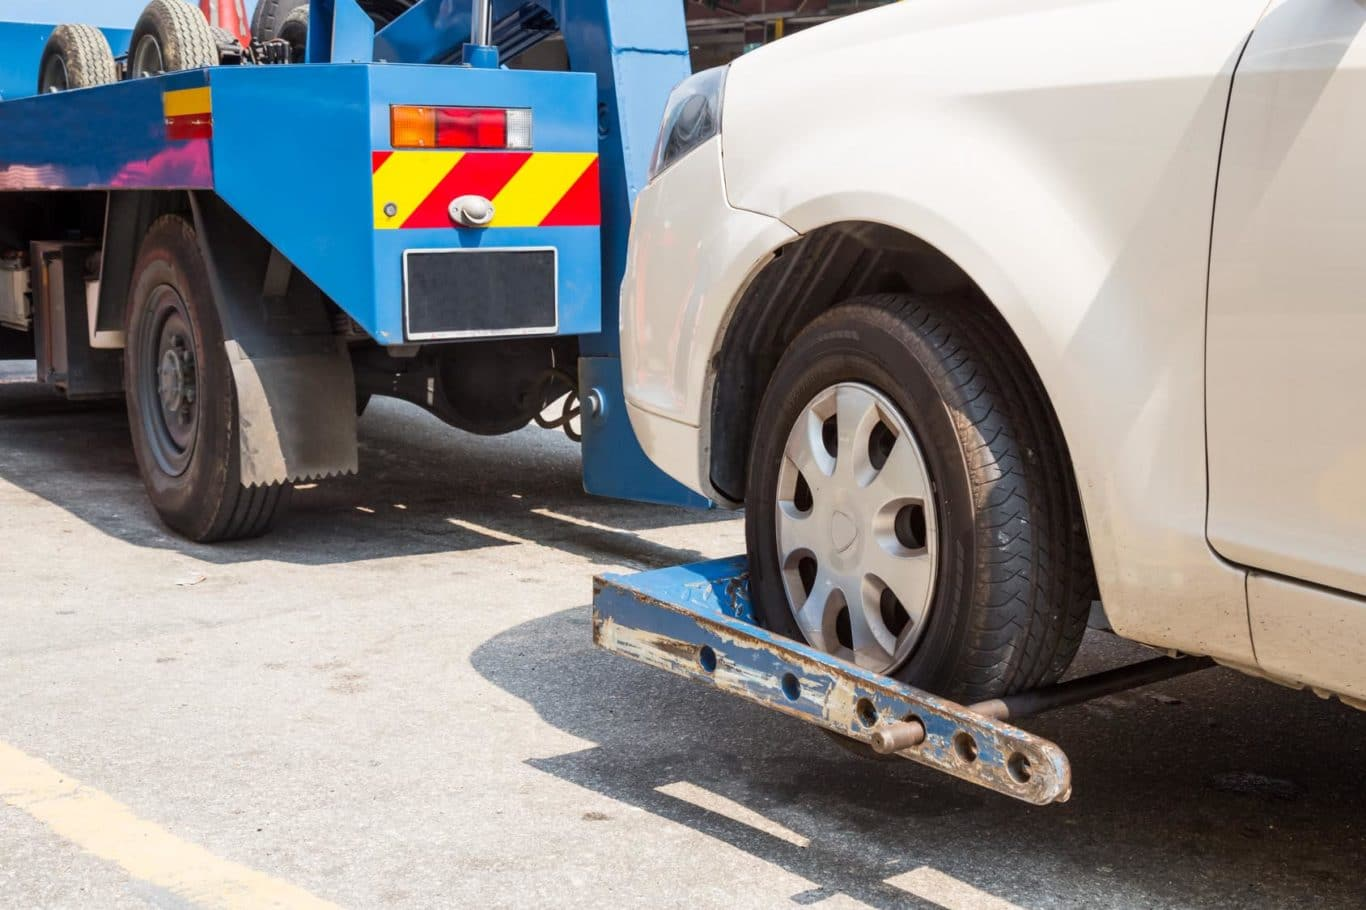 Cabra expert Car Towing services